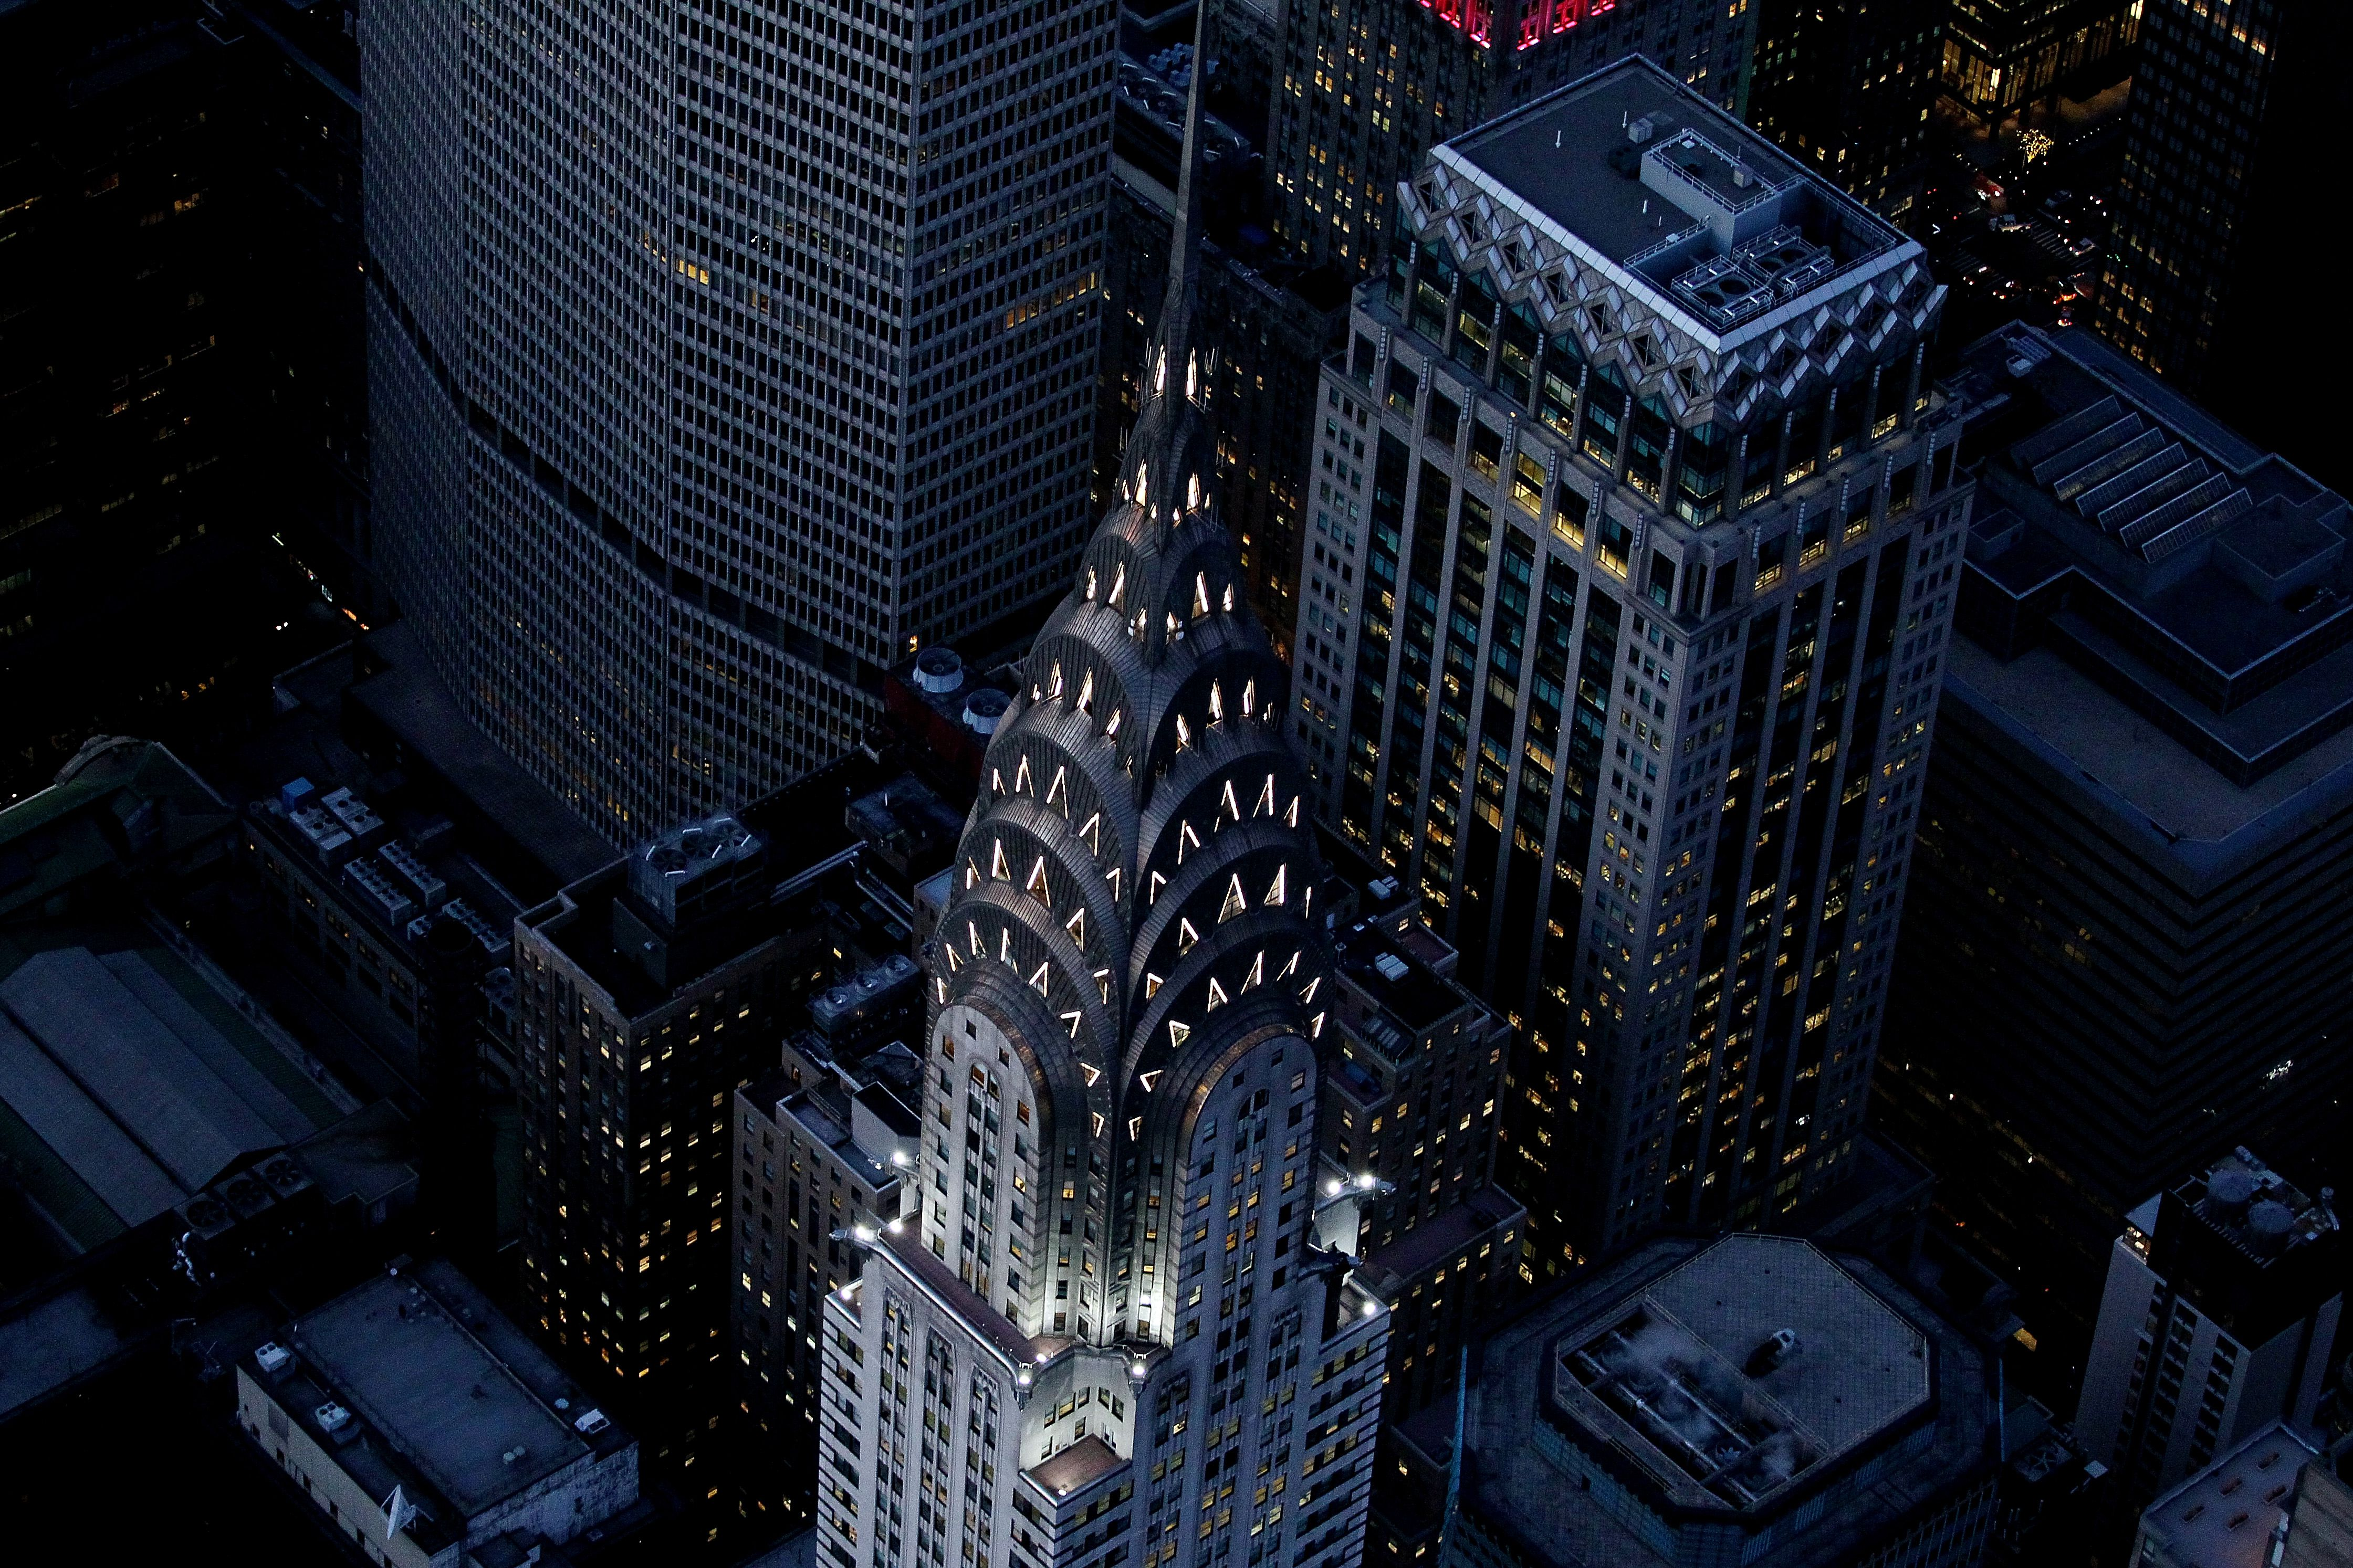 Night aerial view of the top of the Art Deco Chrysler Building in New York City has jazzy automobile ornaments